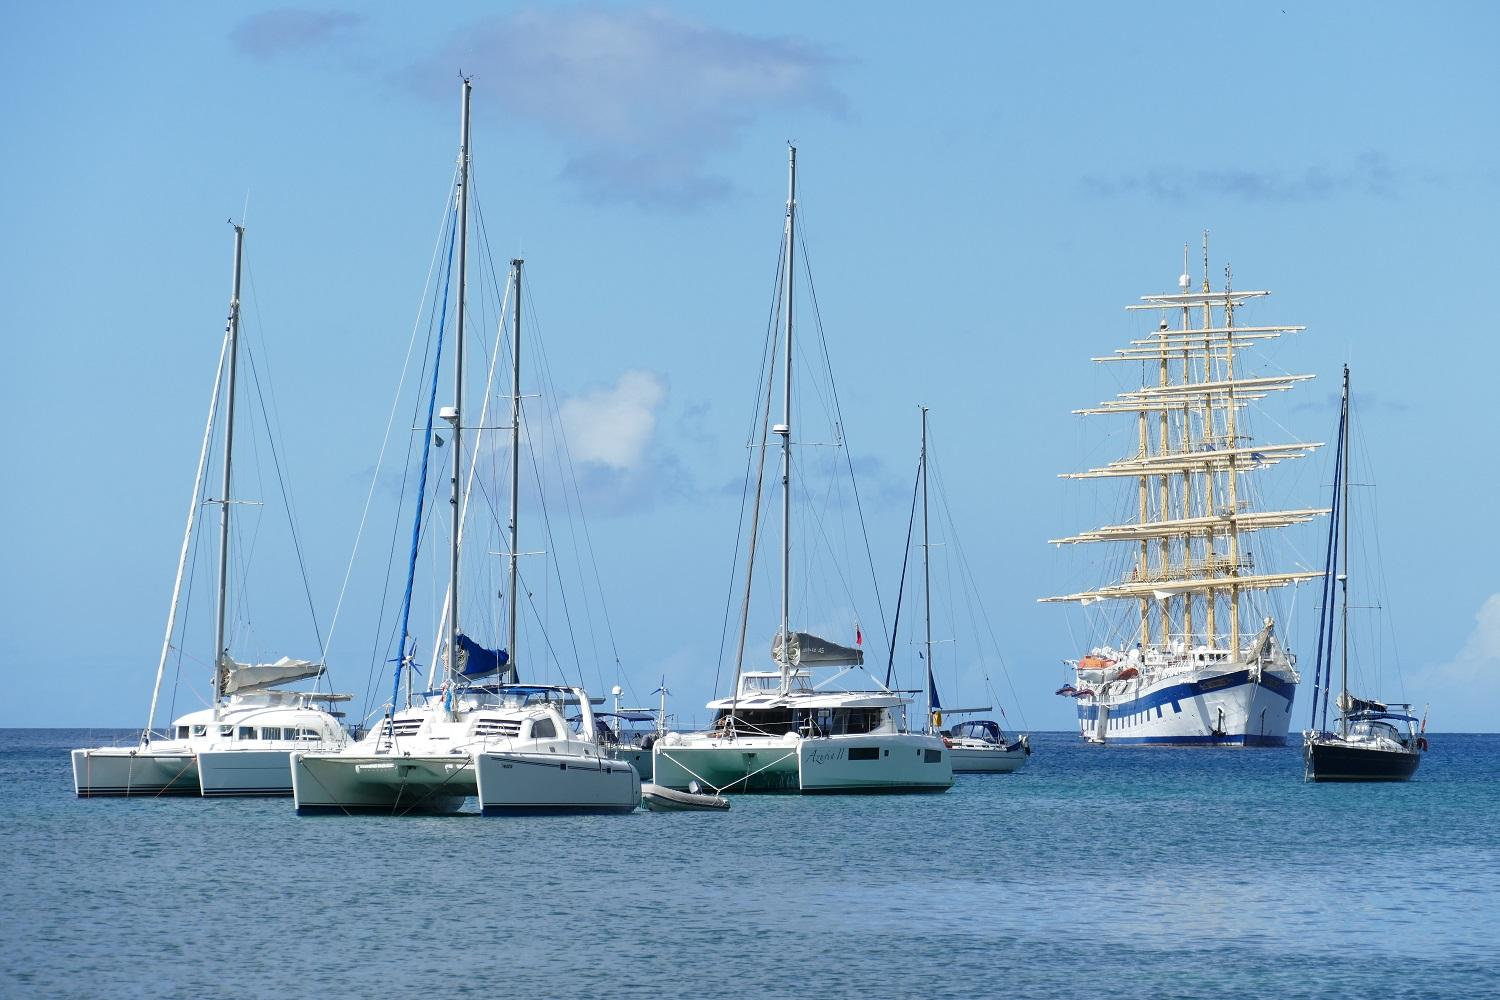 Anchorage in st lucia